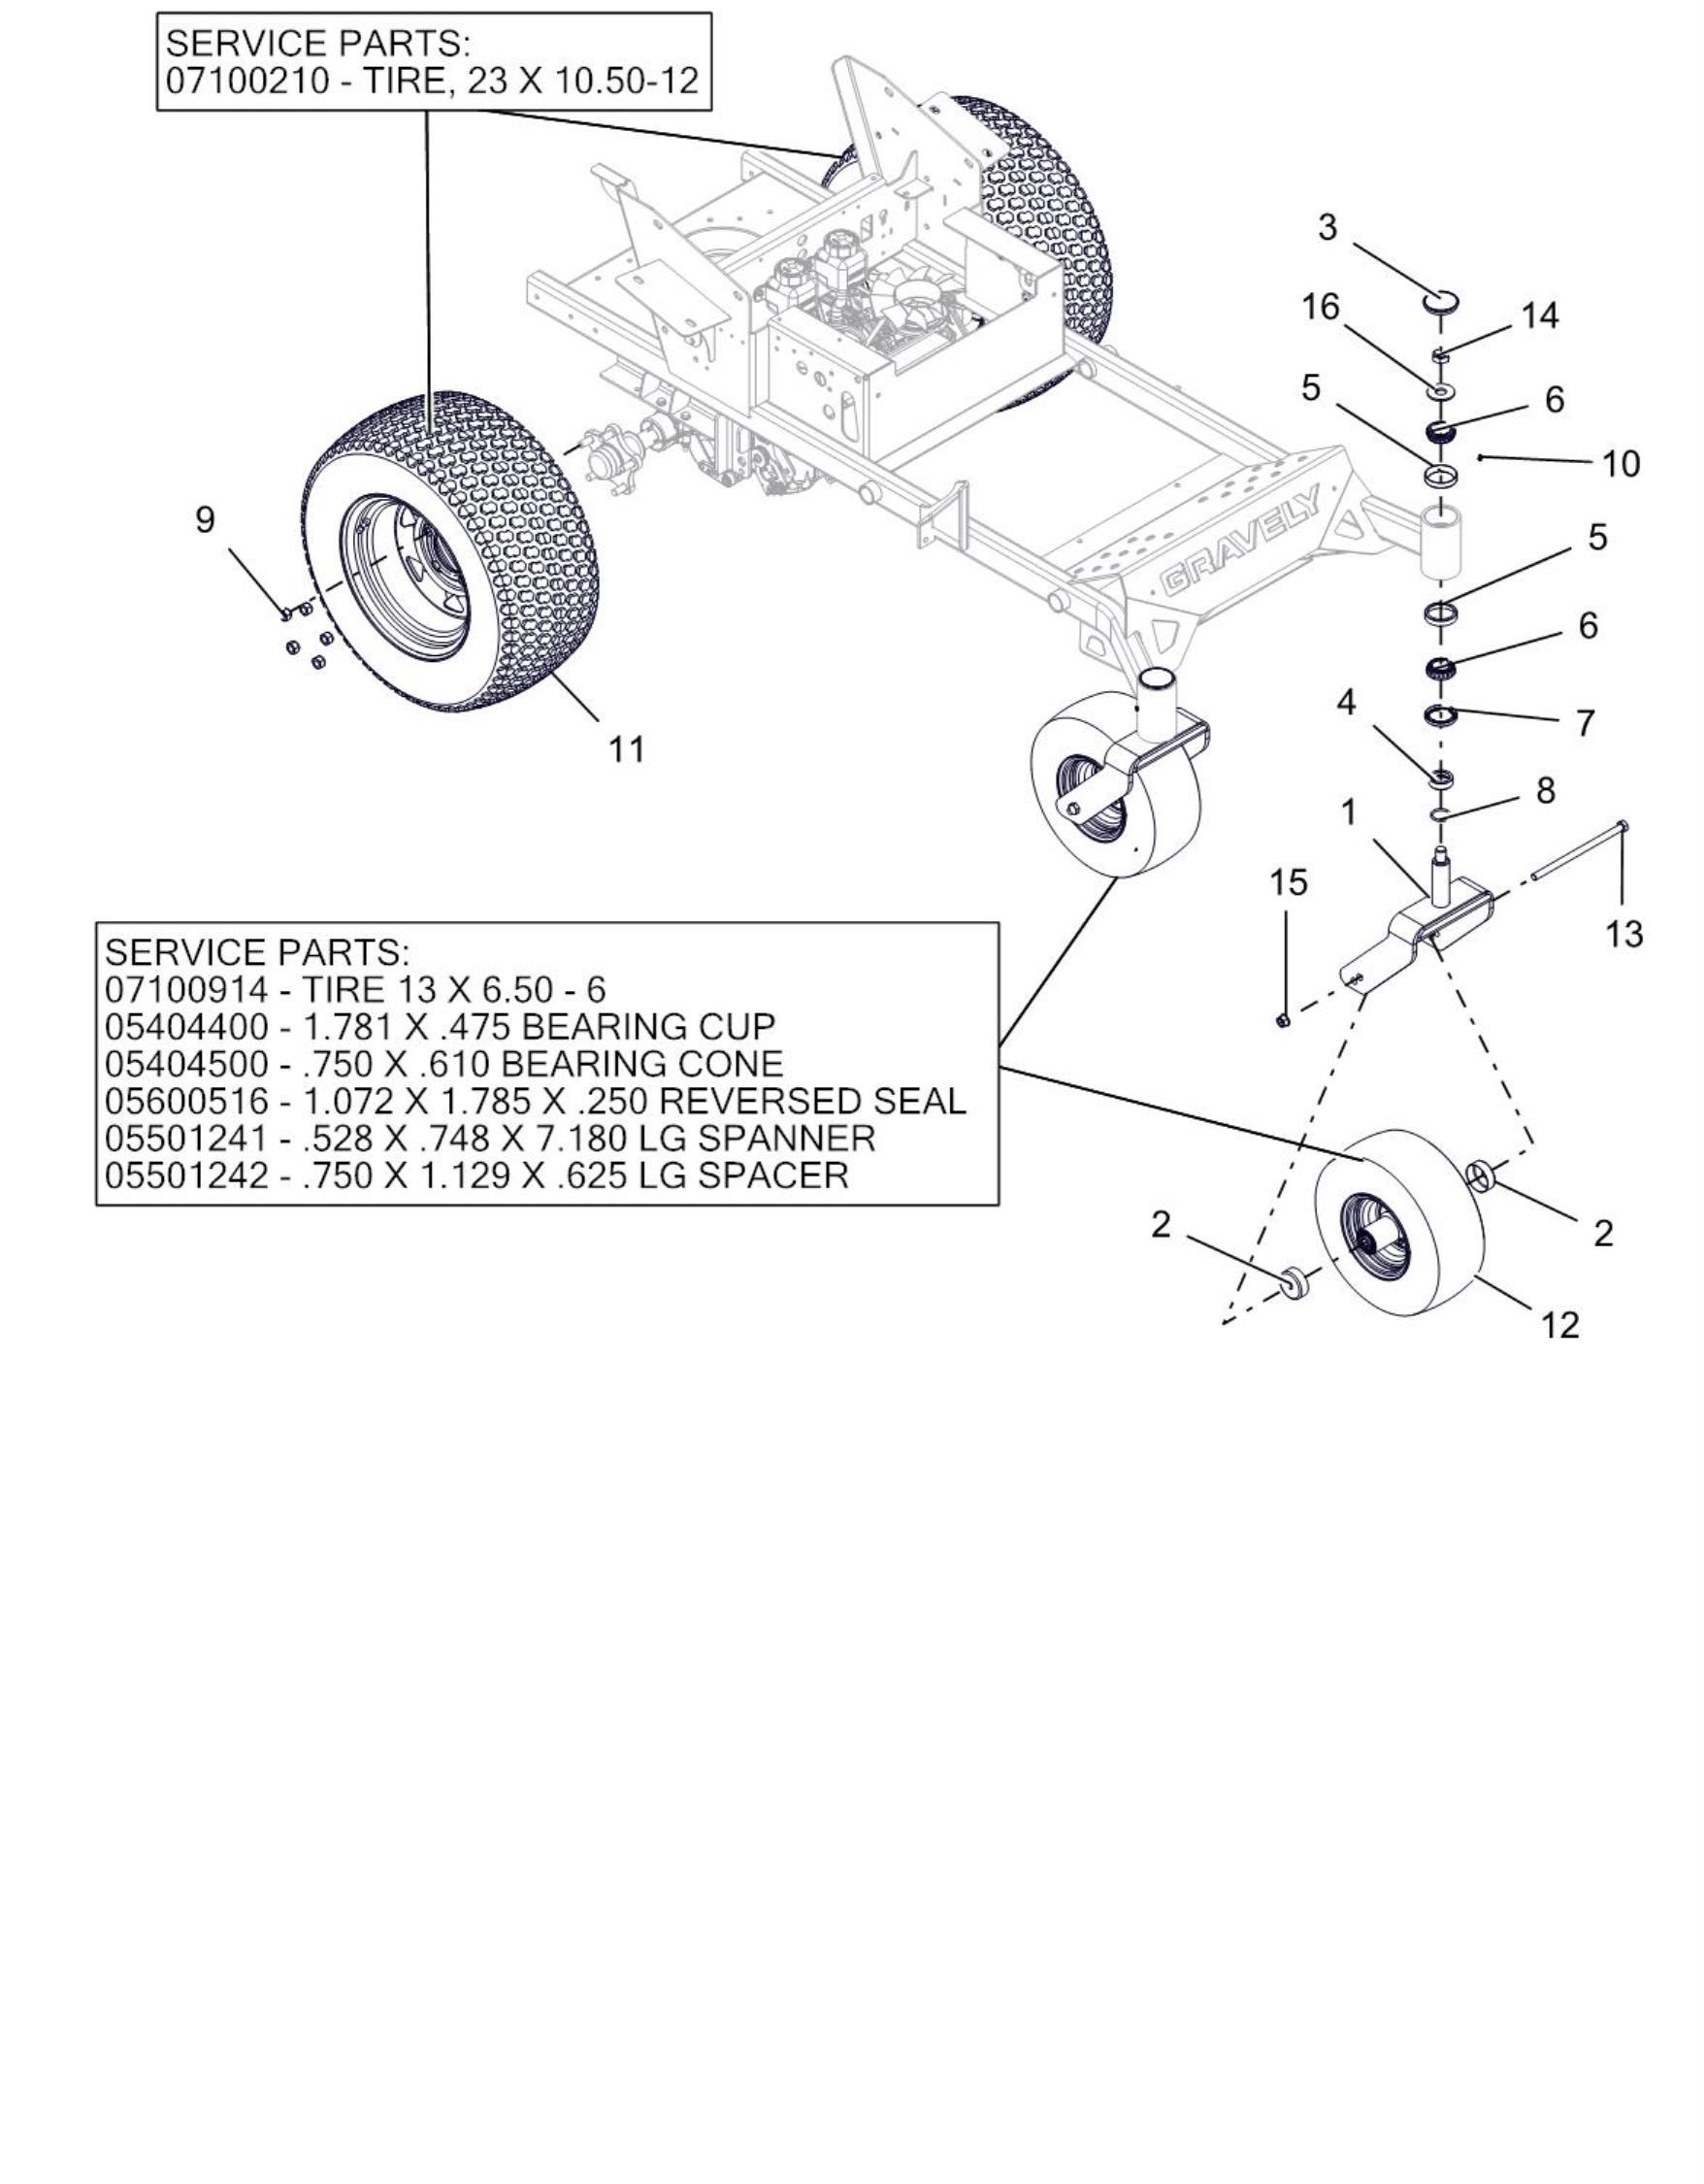 Tire Assembly